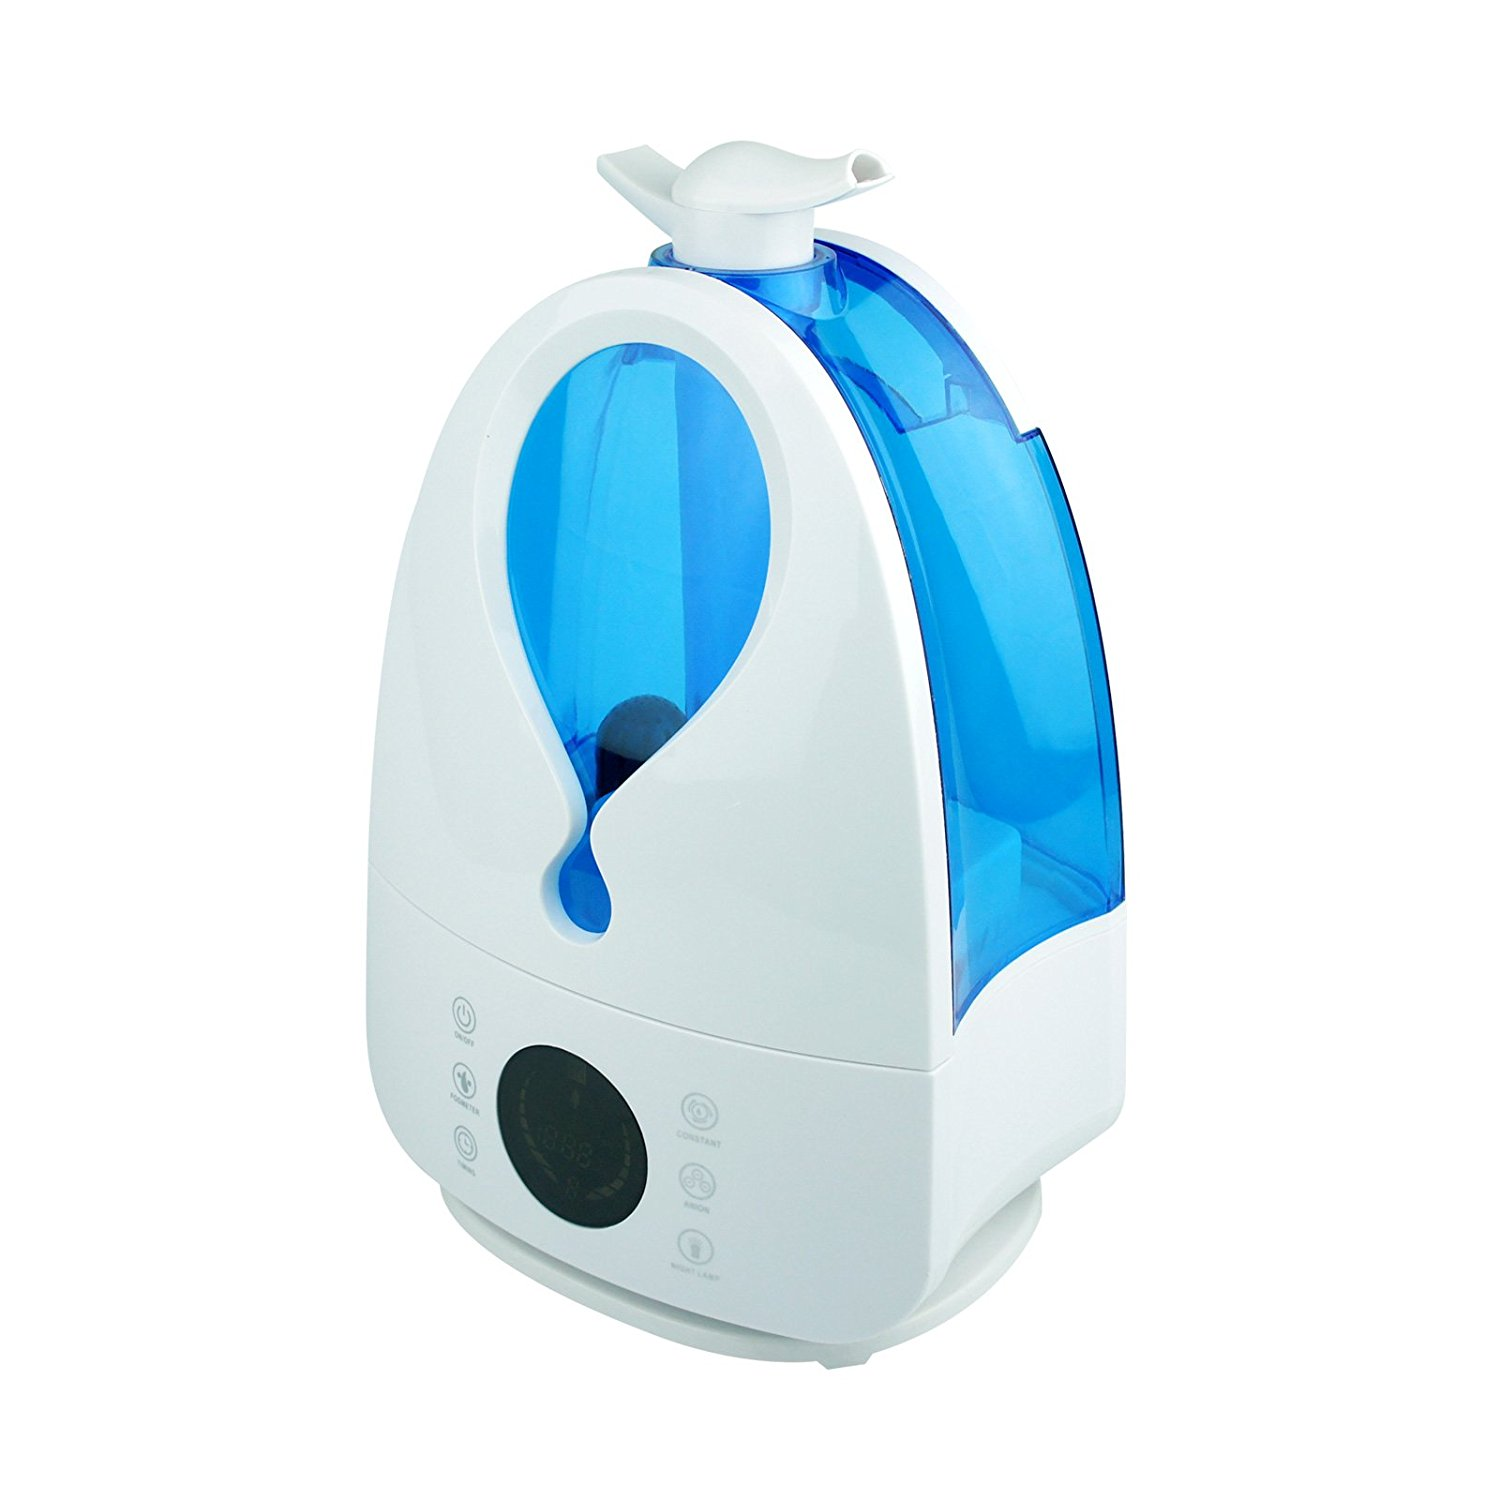 Drop: Apalus Ultrasonic Cool Mist Humidifier $12.99 A Frugal Chick #0541BD